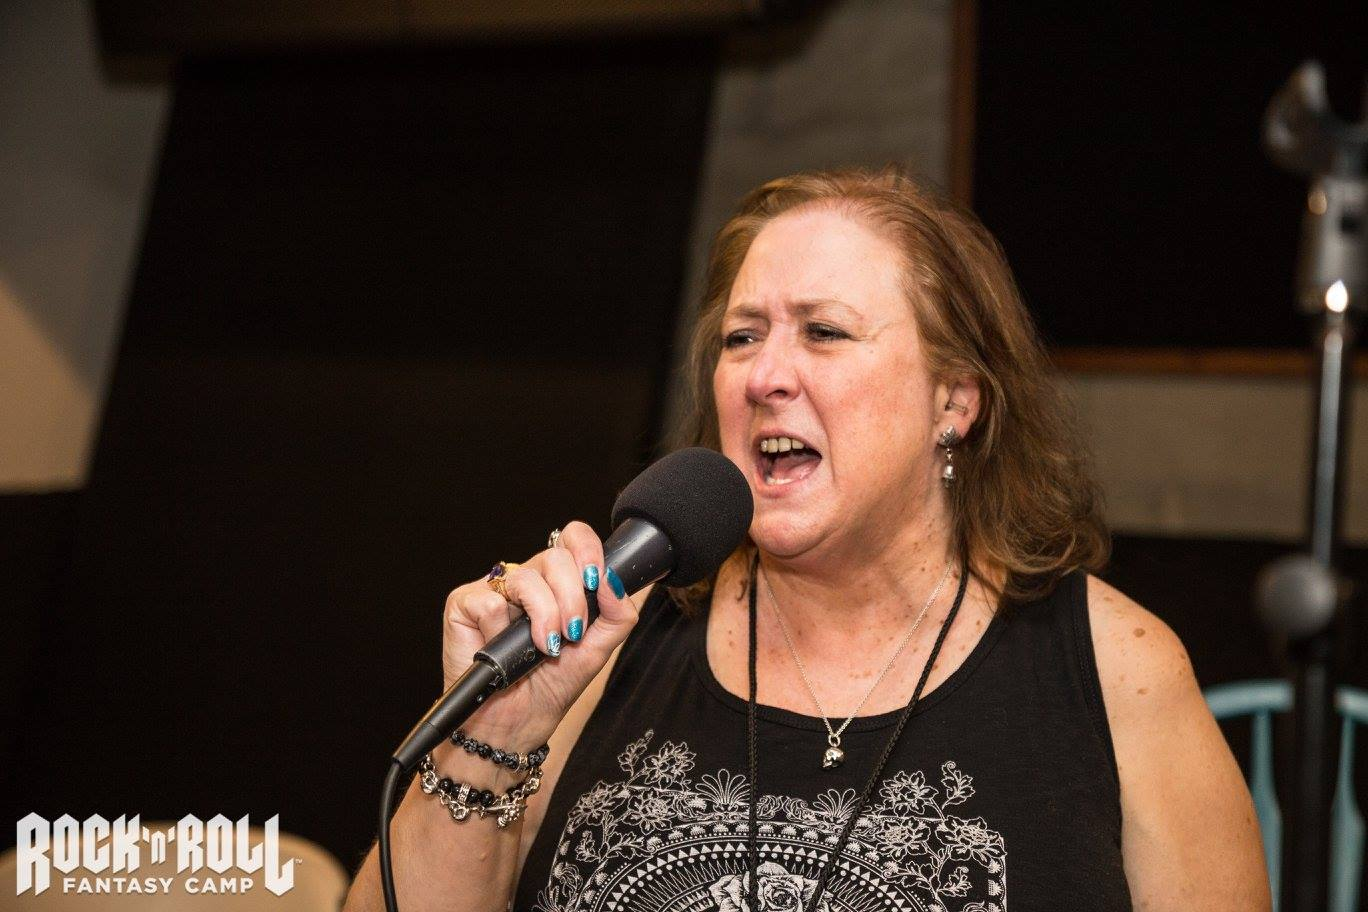 Suzy Singing at Rock N Roll Fantasy Camp